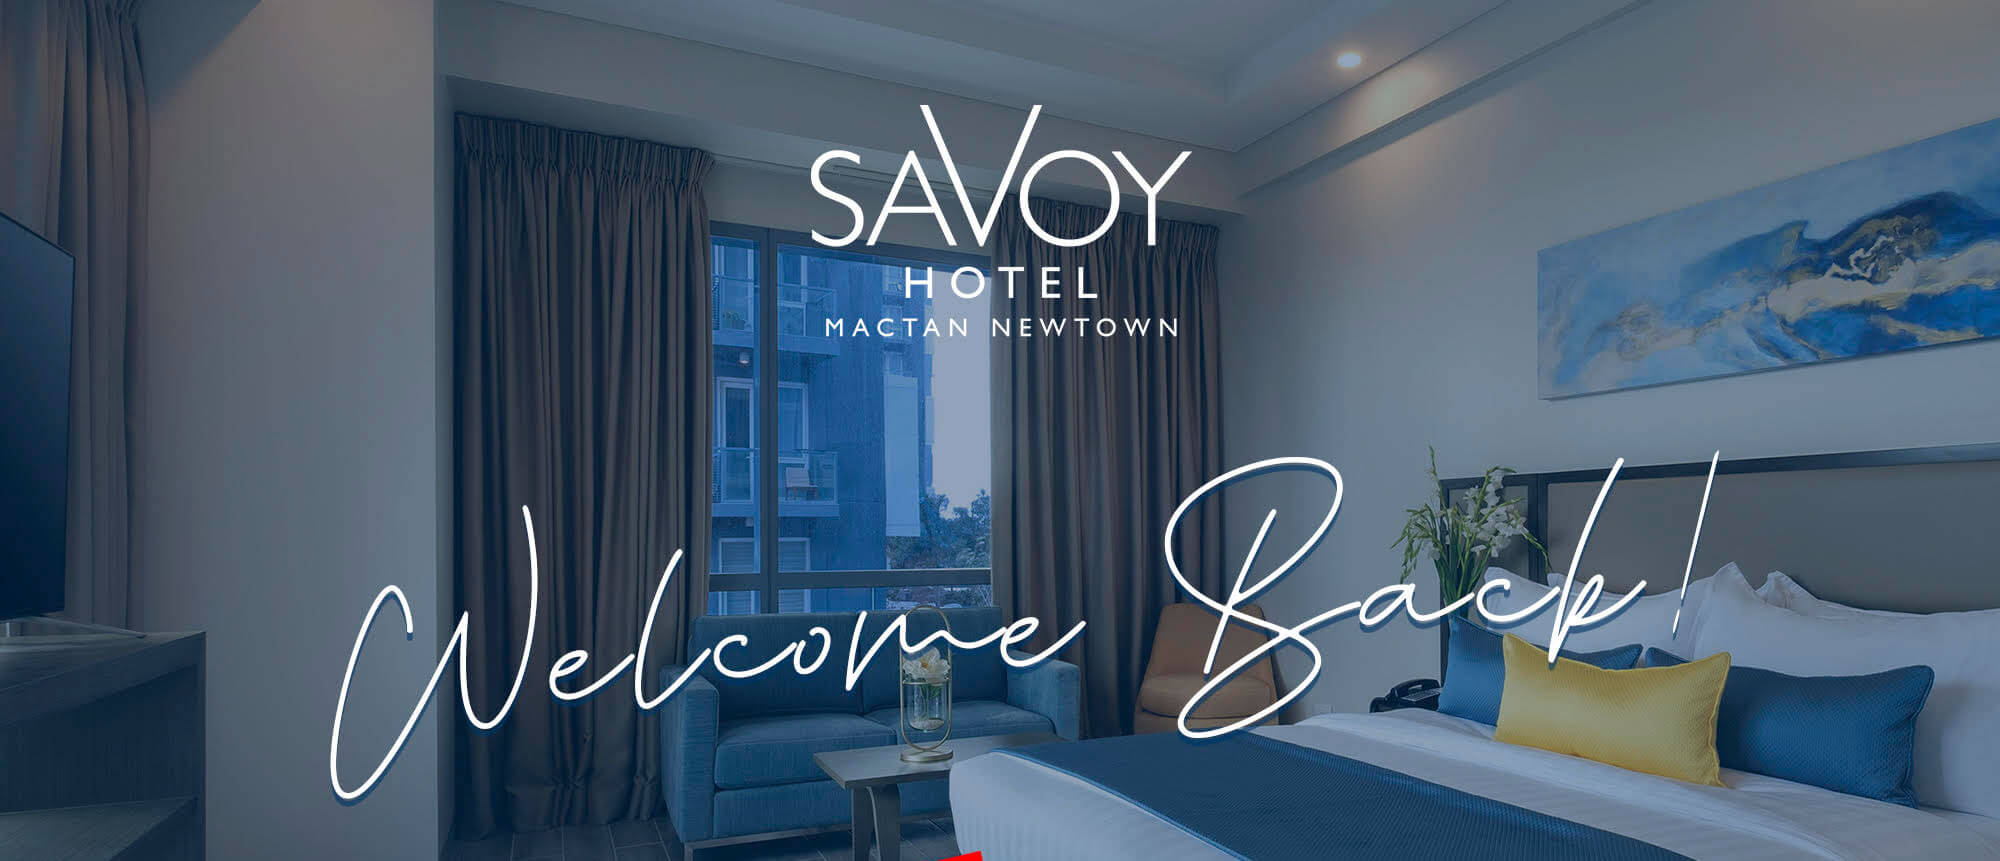 Savoy Hotel Mactan Newtown offers discounted room packages